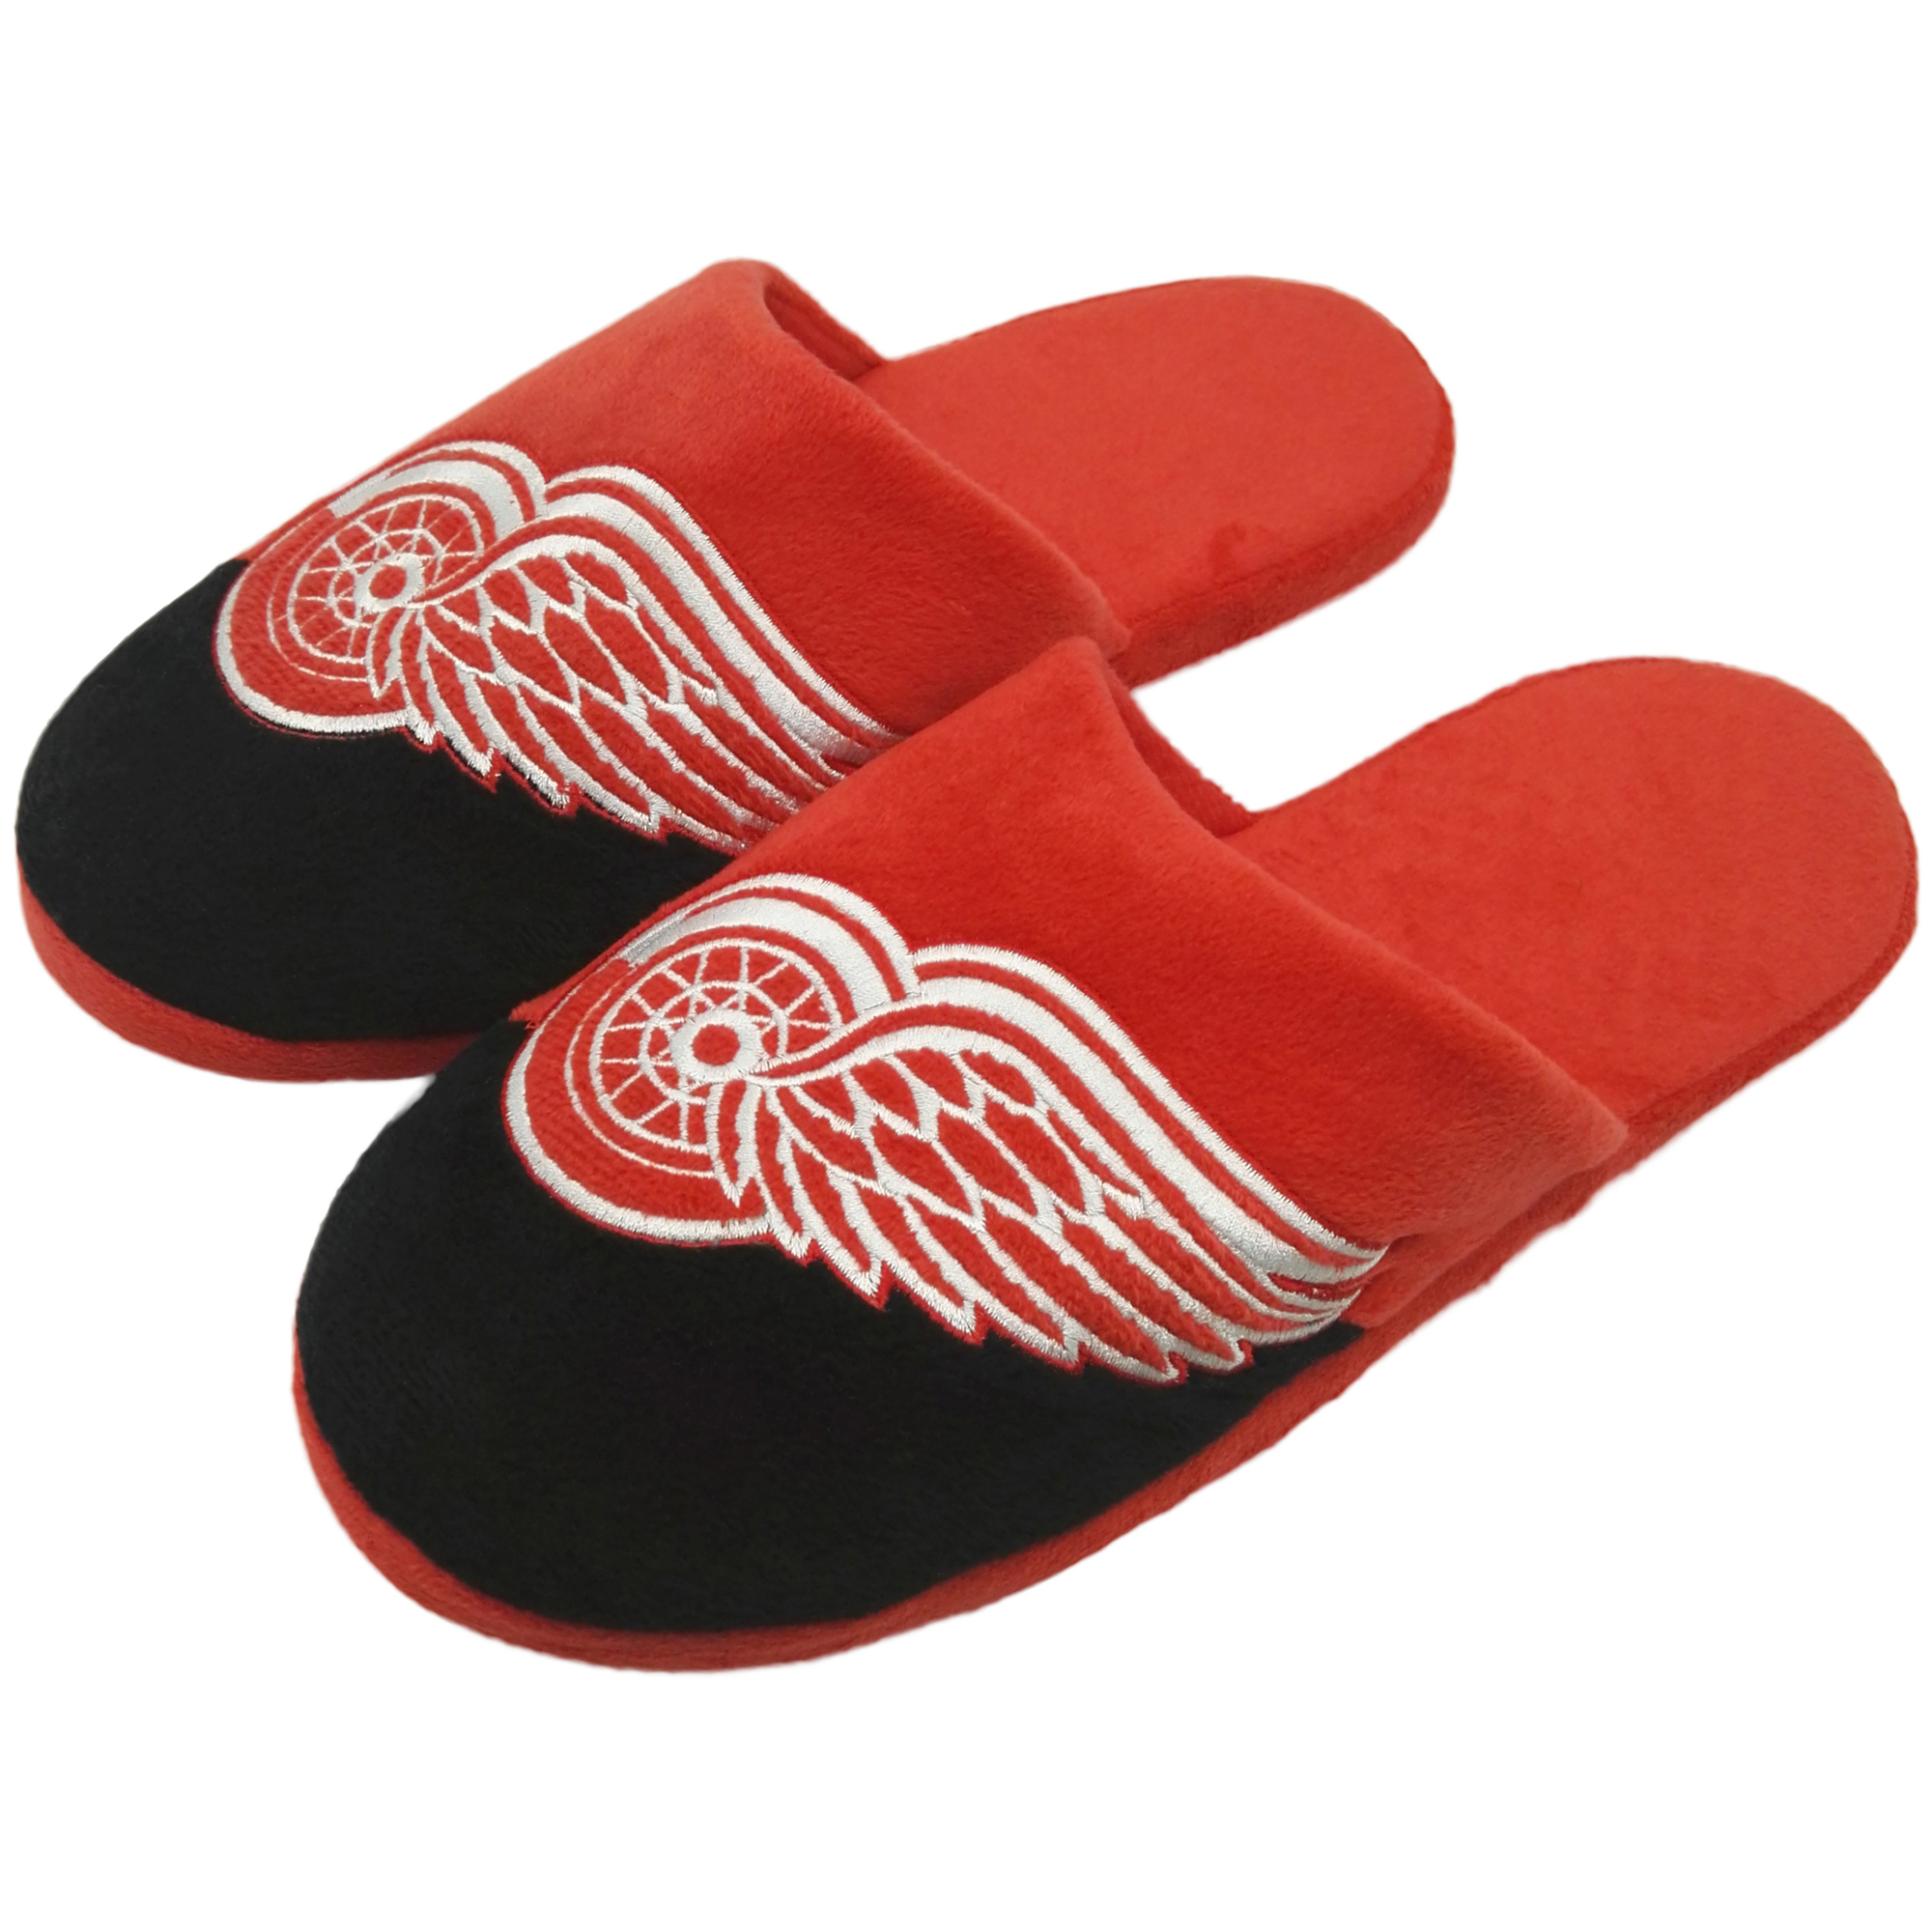 Detroit Red Wings Colorblock Slide Slippers